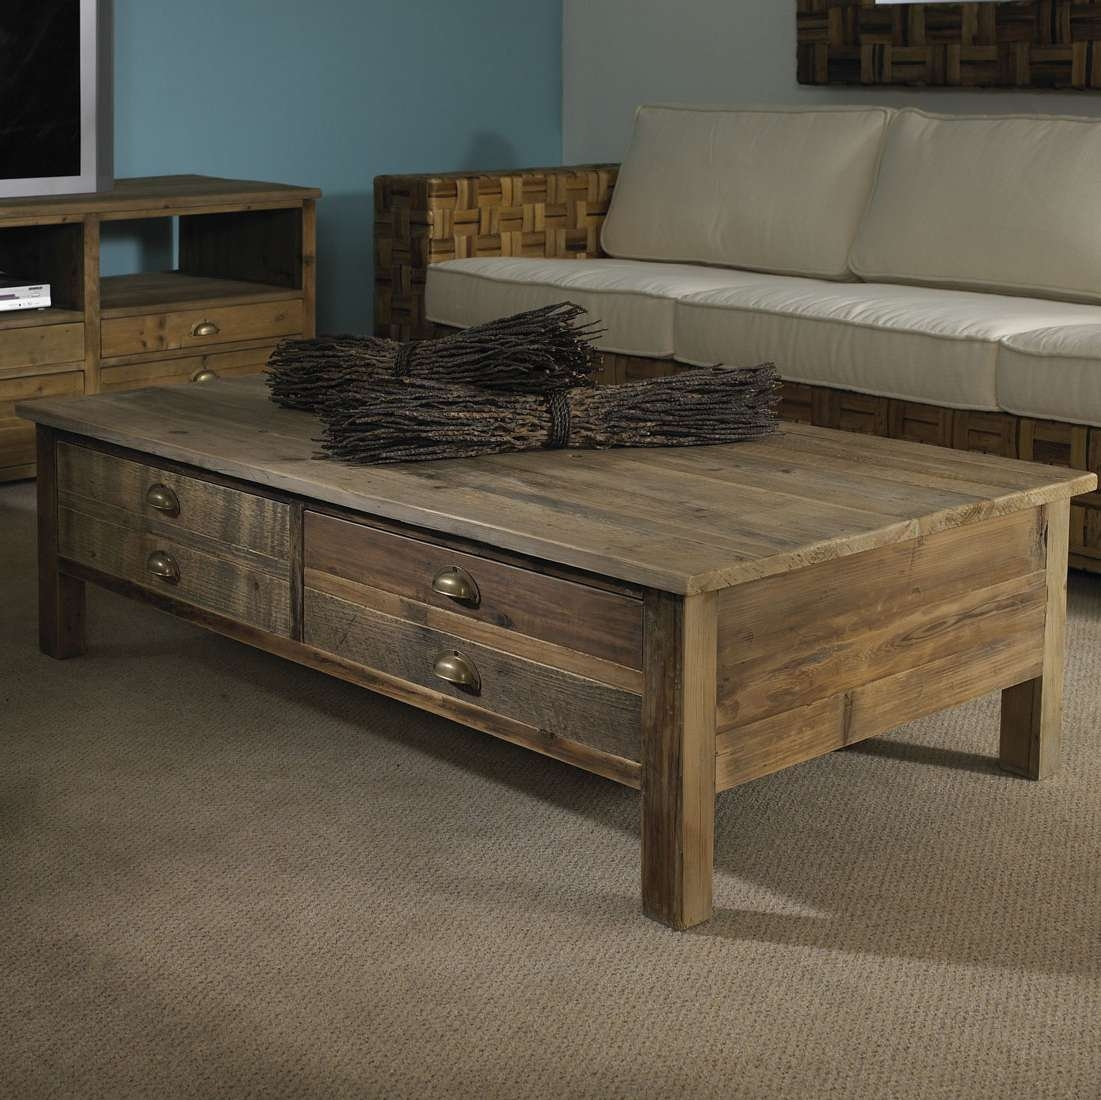 Most Popular Hardwood Coffee Tables With Storage In Deluxe Storage Together With 5 Houzz Reclaimed Wood Coffee Tables (View 13 of 20)